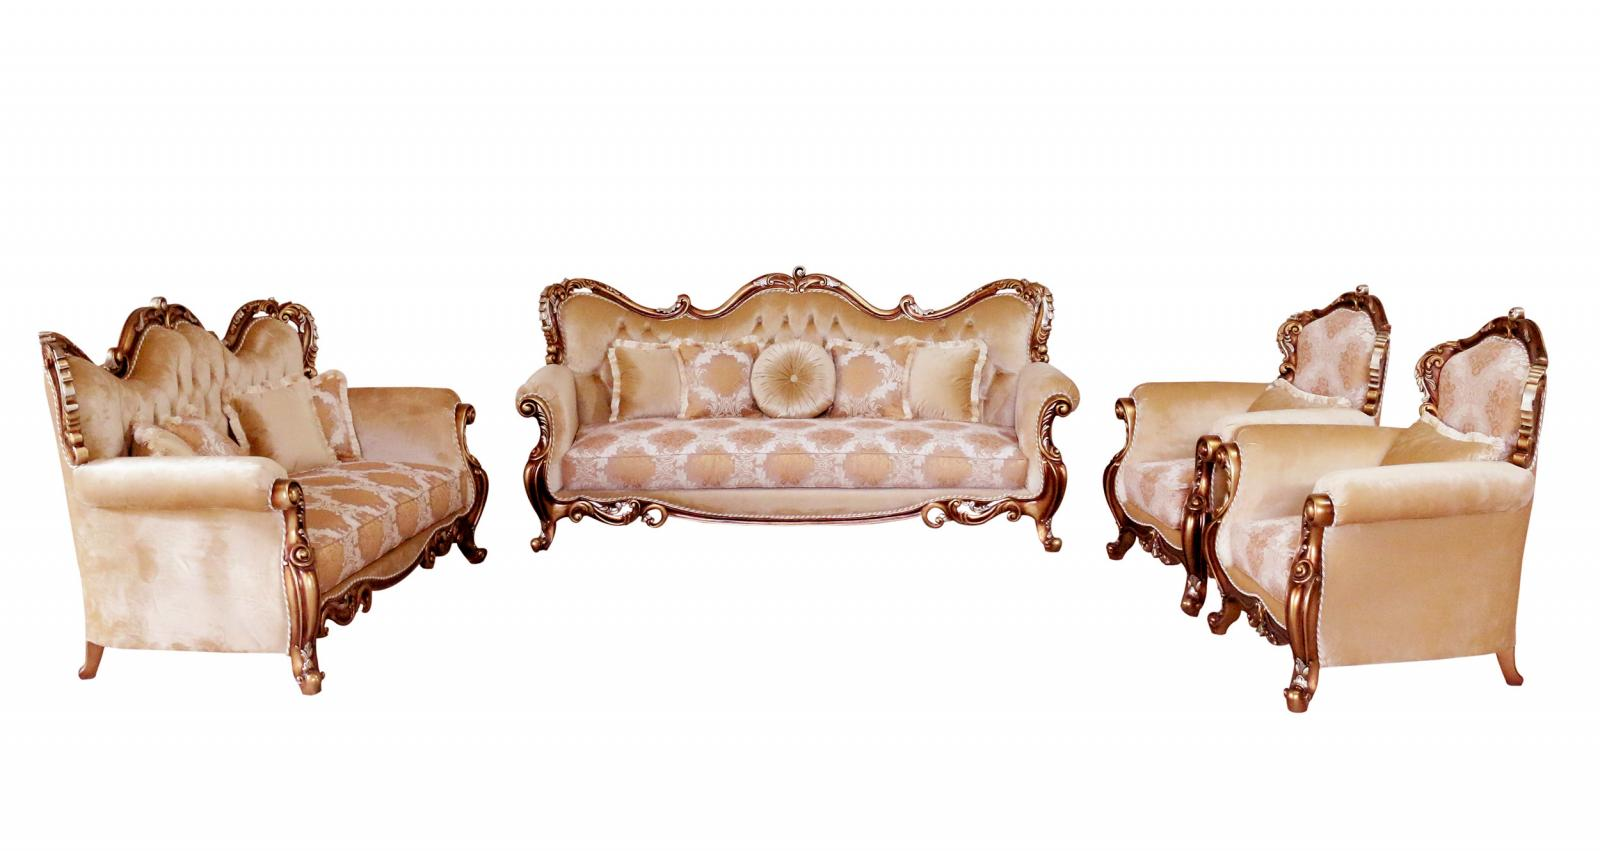 Classic  Traditional Brown  Gold  Silver  Antique Wood  Solid Hardwood and Fabric Sofa Set EUROPEAN FURNITURE 38994-S-Set-4